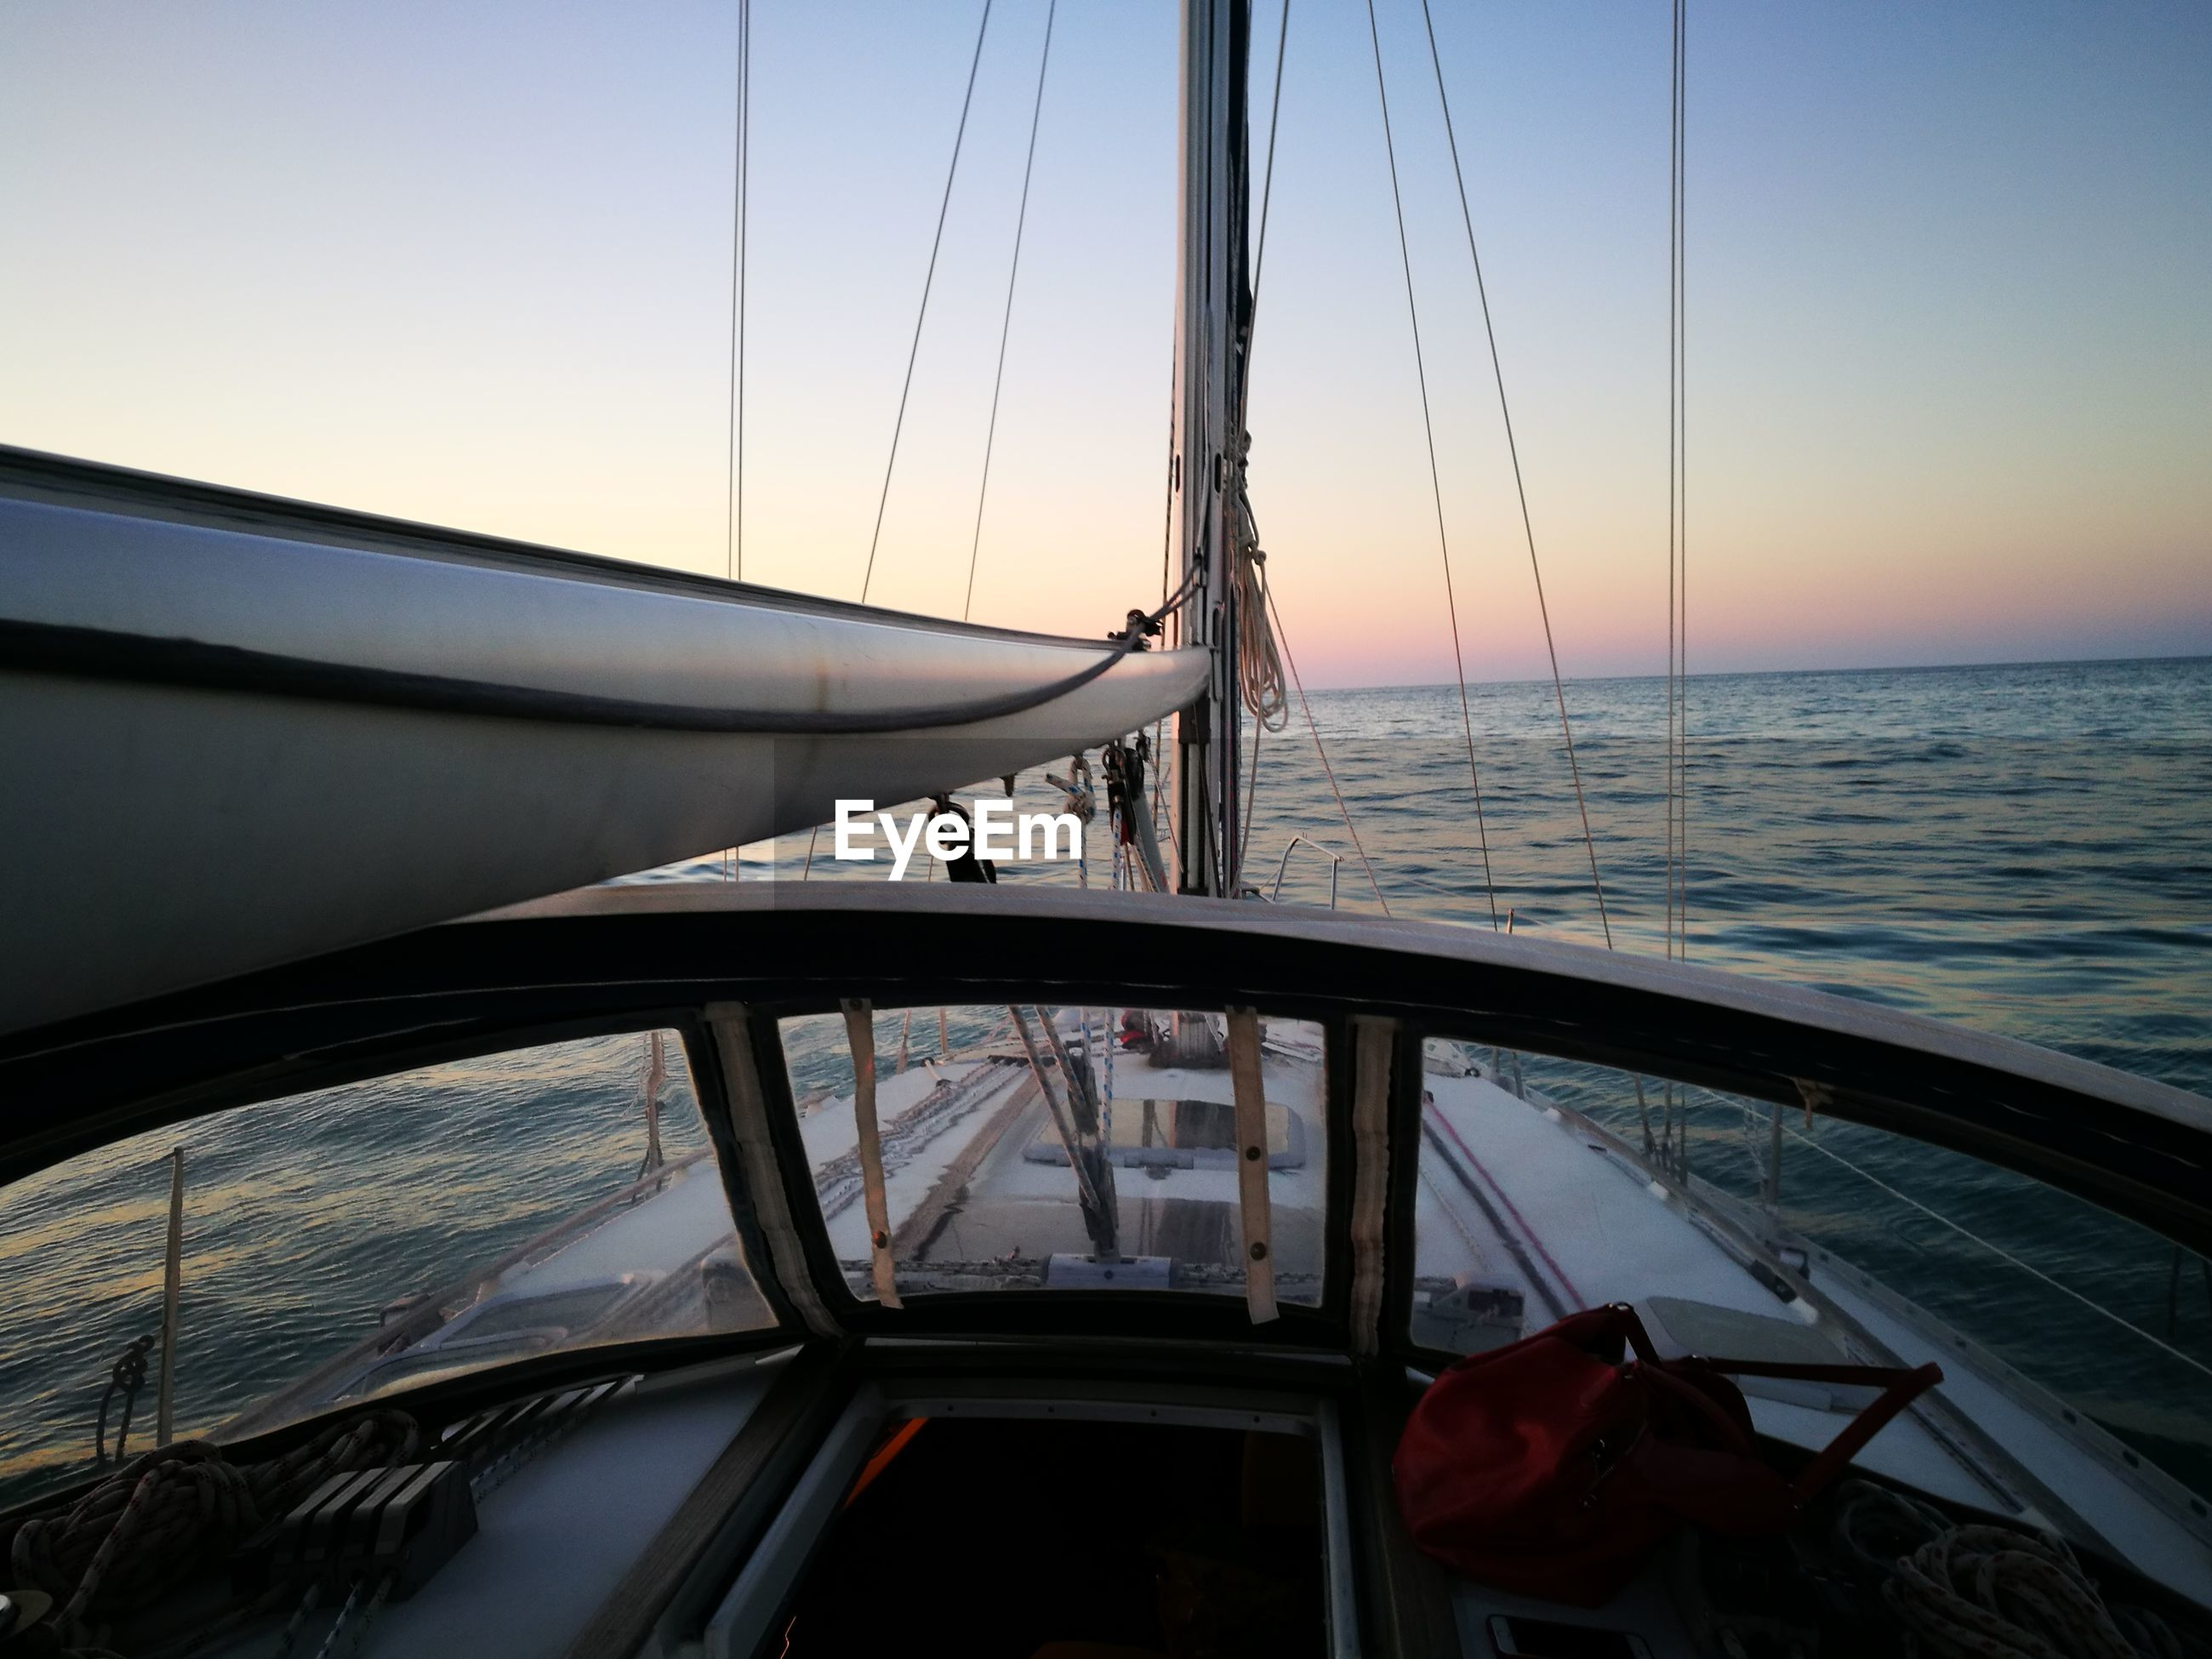 sea, transportation, nautical vessel, mode of transport, nature, sunset, scenics, water, horizon over water, sky, no people, outdoors, beauty in nature, sailing, sailboat, clear sky, mast, day, yacht